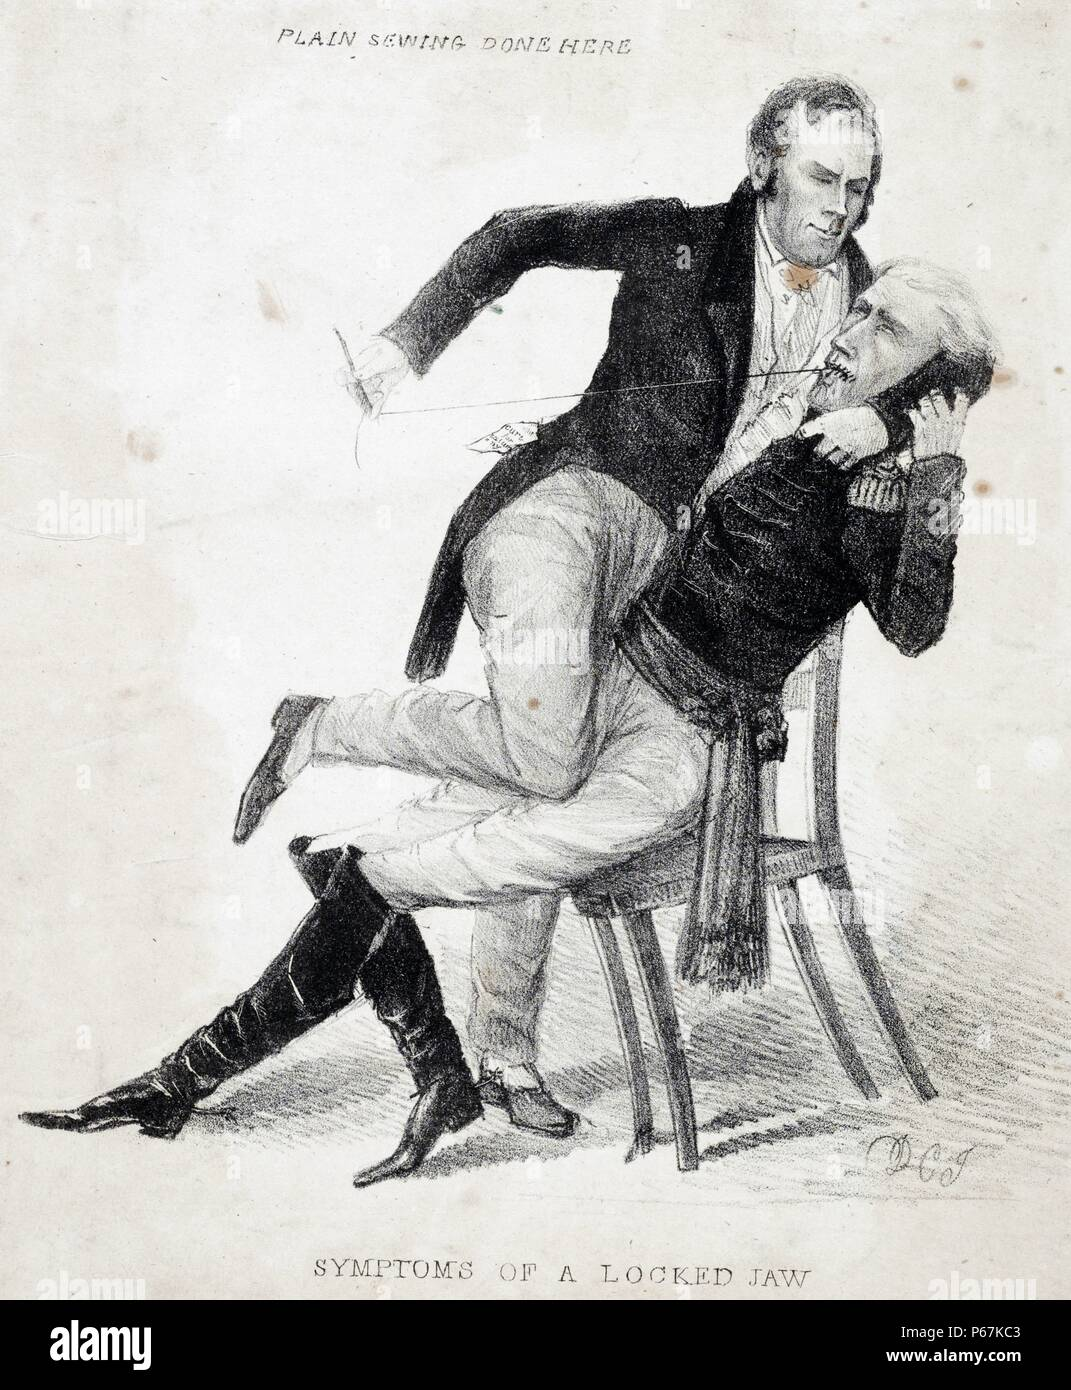 Symptoms of a locked jaw. Plain sewing done here' The caricature reflects the bitter antagonism between Kentucky senator Henry Clay and President Andrew Jackson, during the protracted battle over the future of the Bank of the United States from 1832 through 1836. The print may relate specifically to Clay's successful 1834 campaign to exclude from the Senate journal Jackson's statement of protest against Congressional censure of his earlier actions on the Bank. Clay is shown restraining a seated, uniformed Jackson and sewing up his mouth. - Stock Image